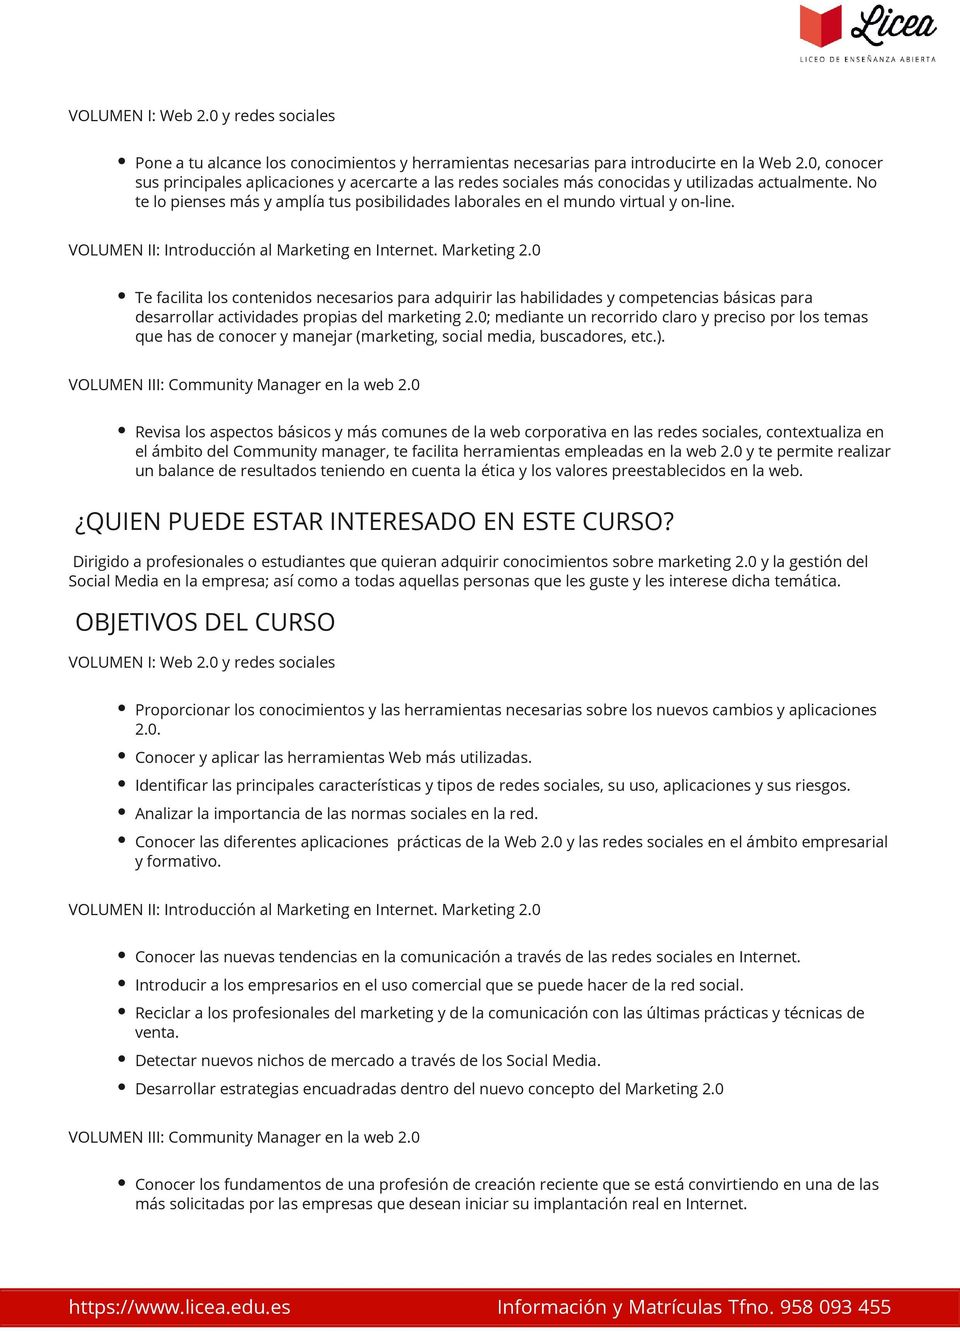 No te lo pienses más y amplía tus posibilidades laborales en el mundo virtual y on-line. VOLUMEN II: Introducción al Marketing en Internet. Marketing 2.